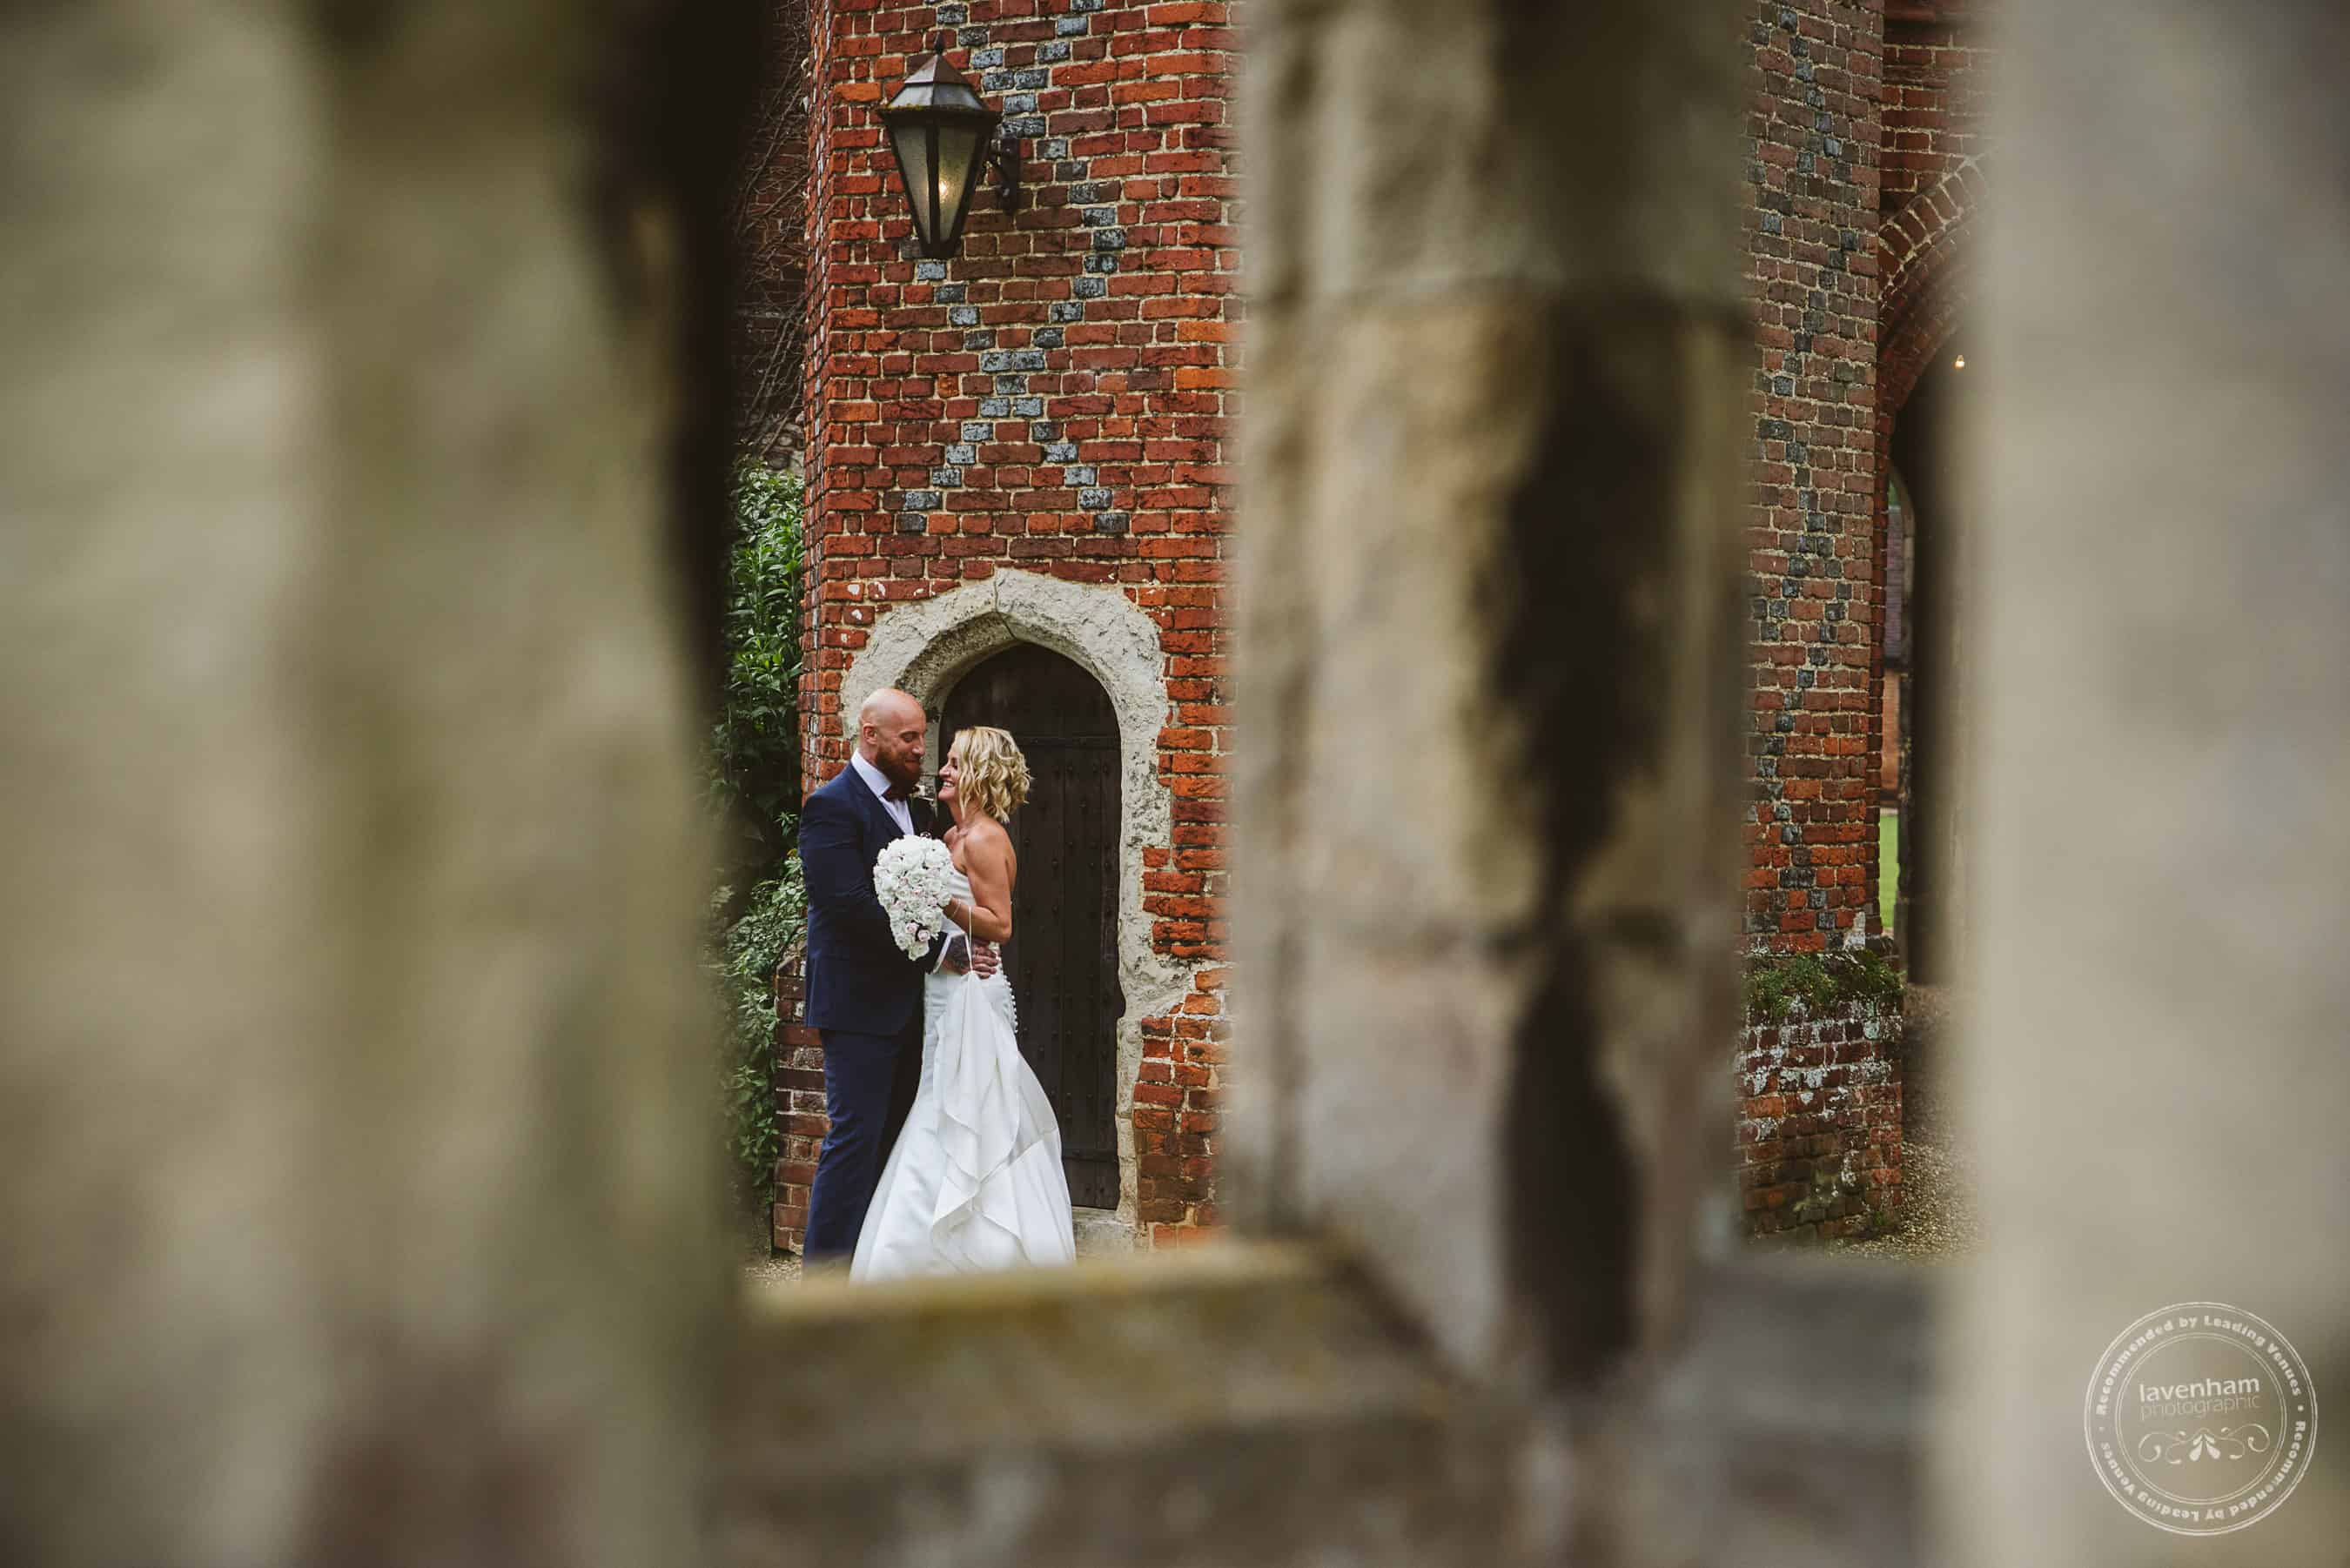 290518 Leez Priory Wedding Photography Lavenham Photographic 104